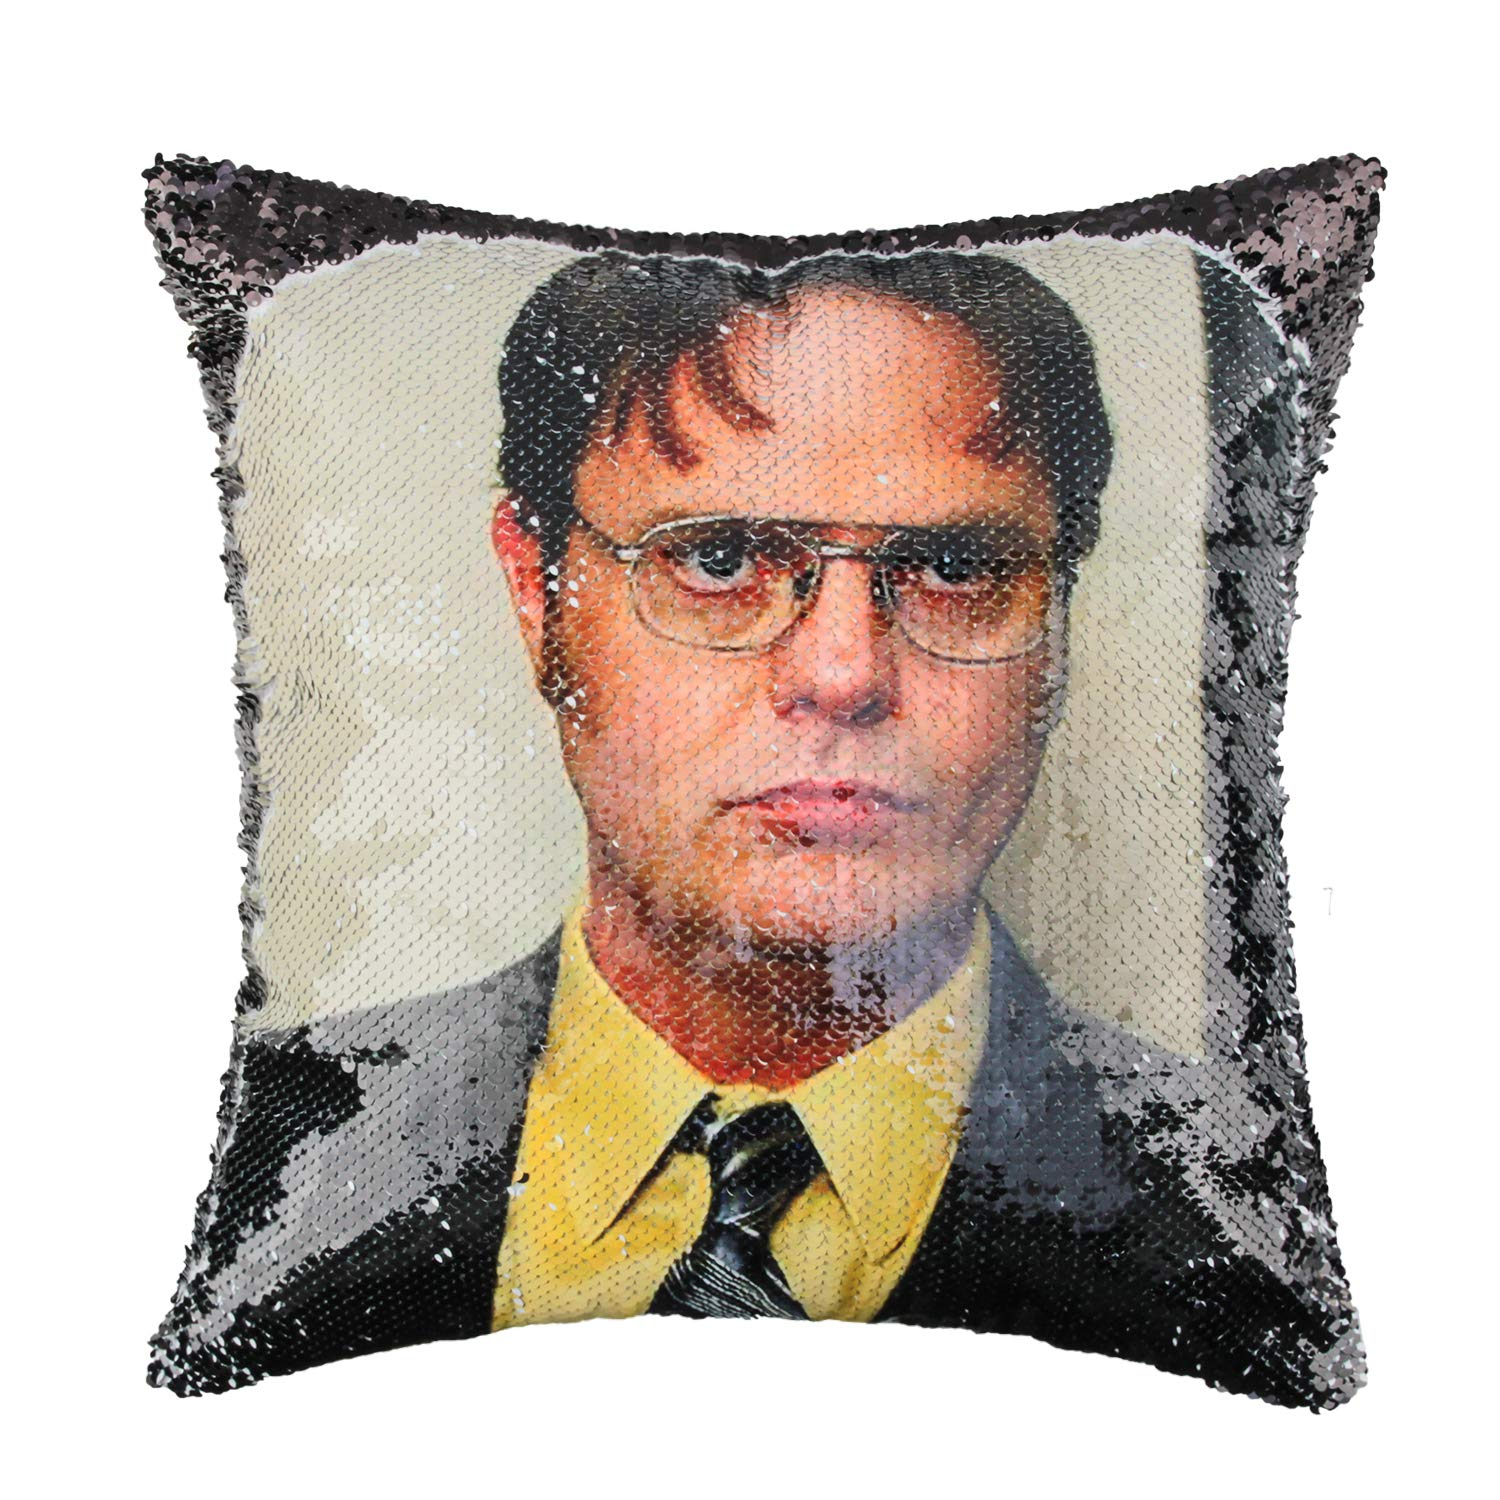 Merrycolor The Office Sequin Pillow Cover Dwight Schrute Magic Reversible Mermaid Throw Pillow Cover for Couch Decorative Cushion Cover Gifts 16 x 16 Inches (D Black)